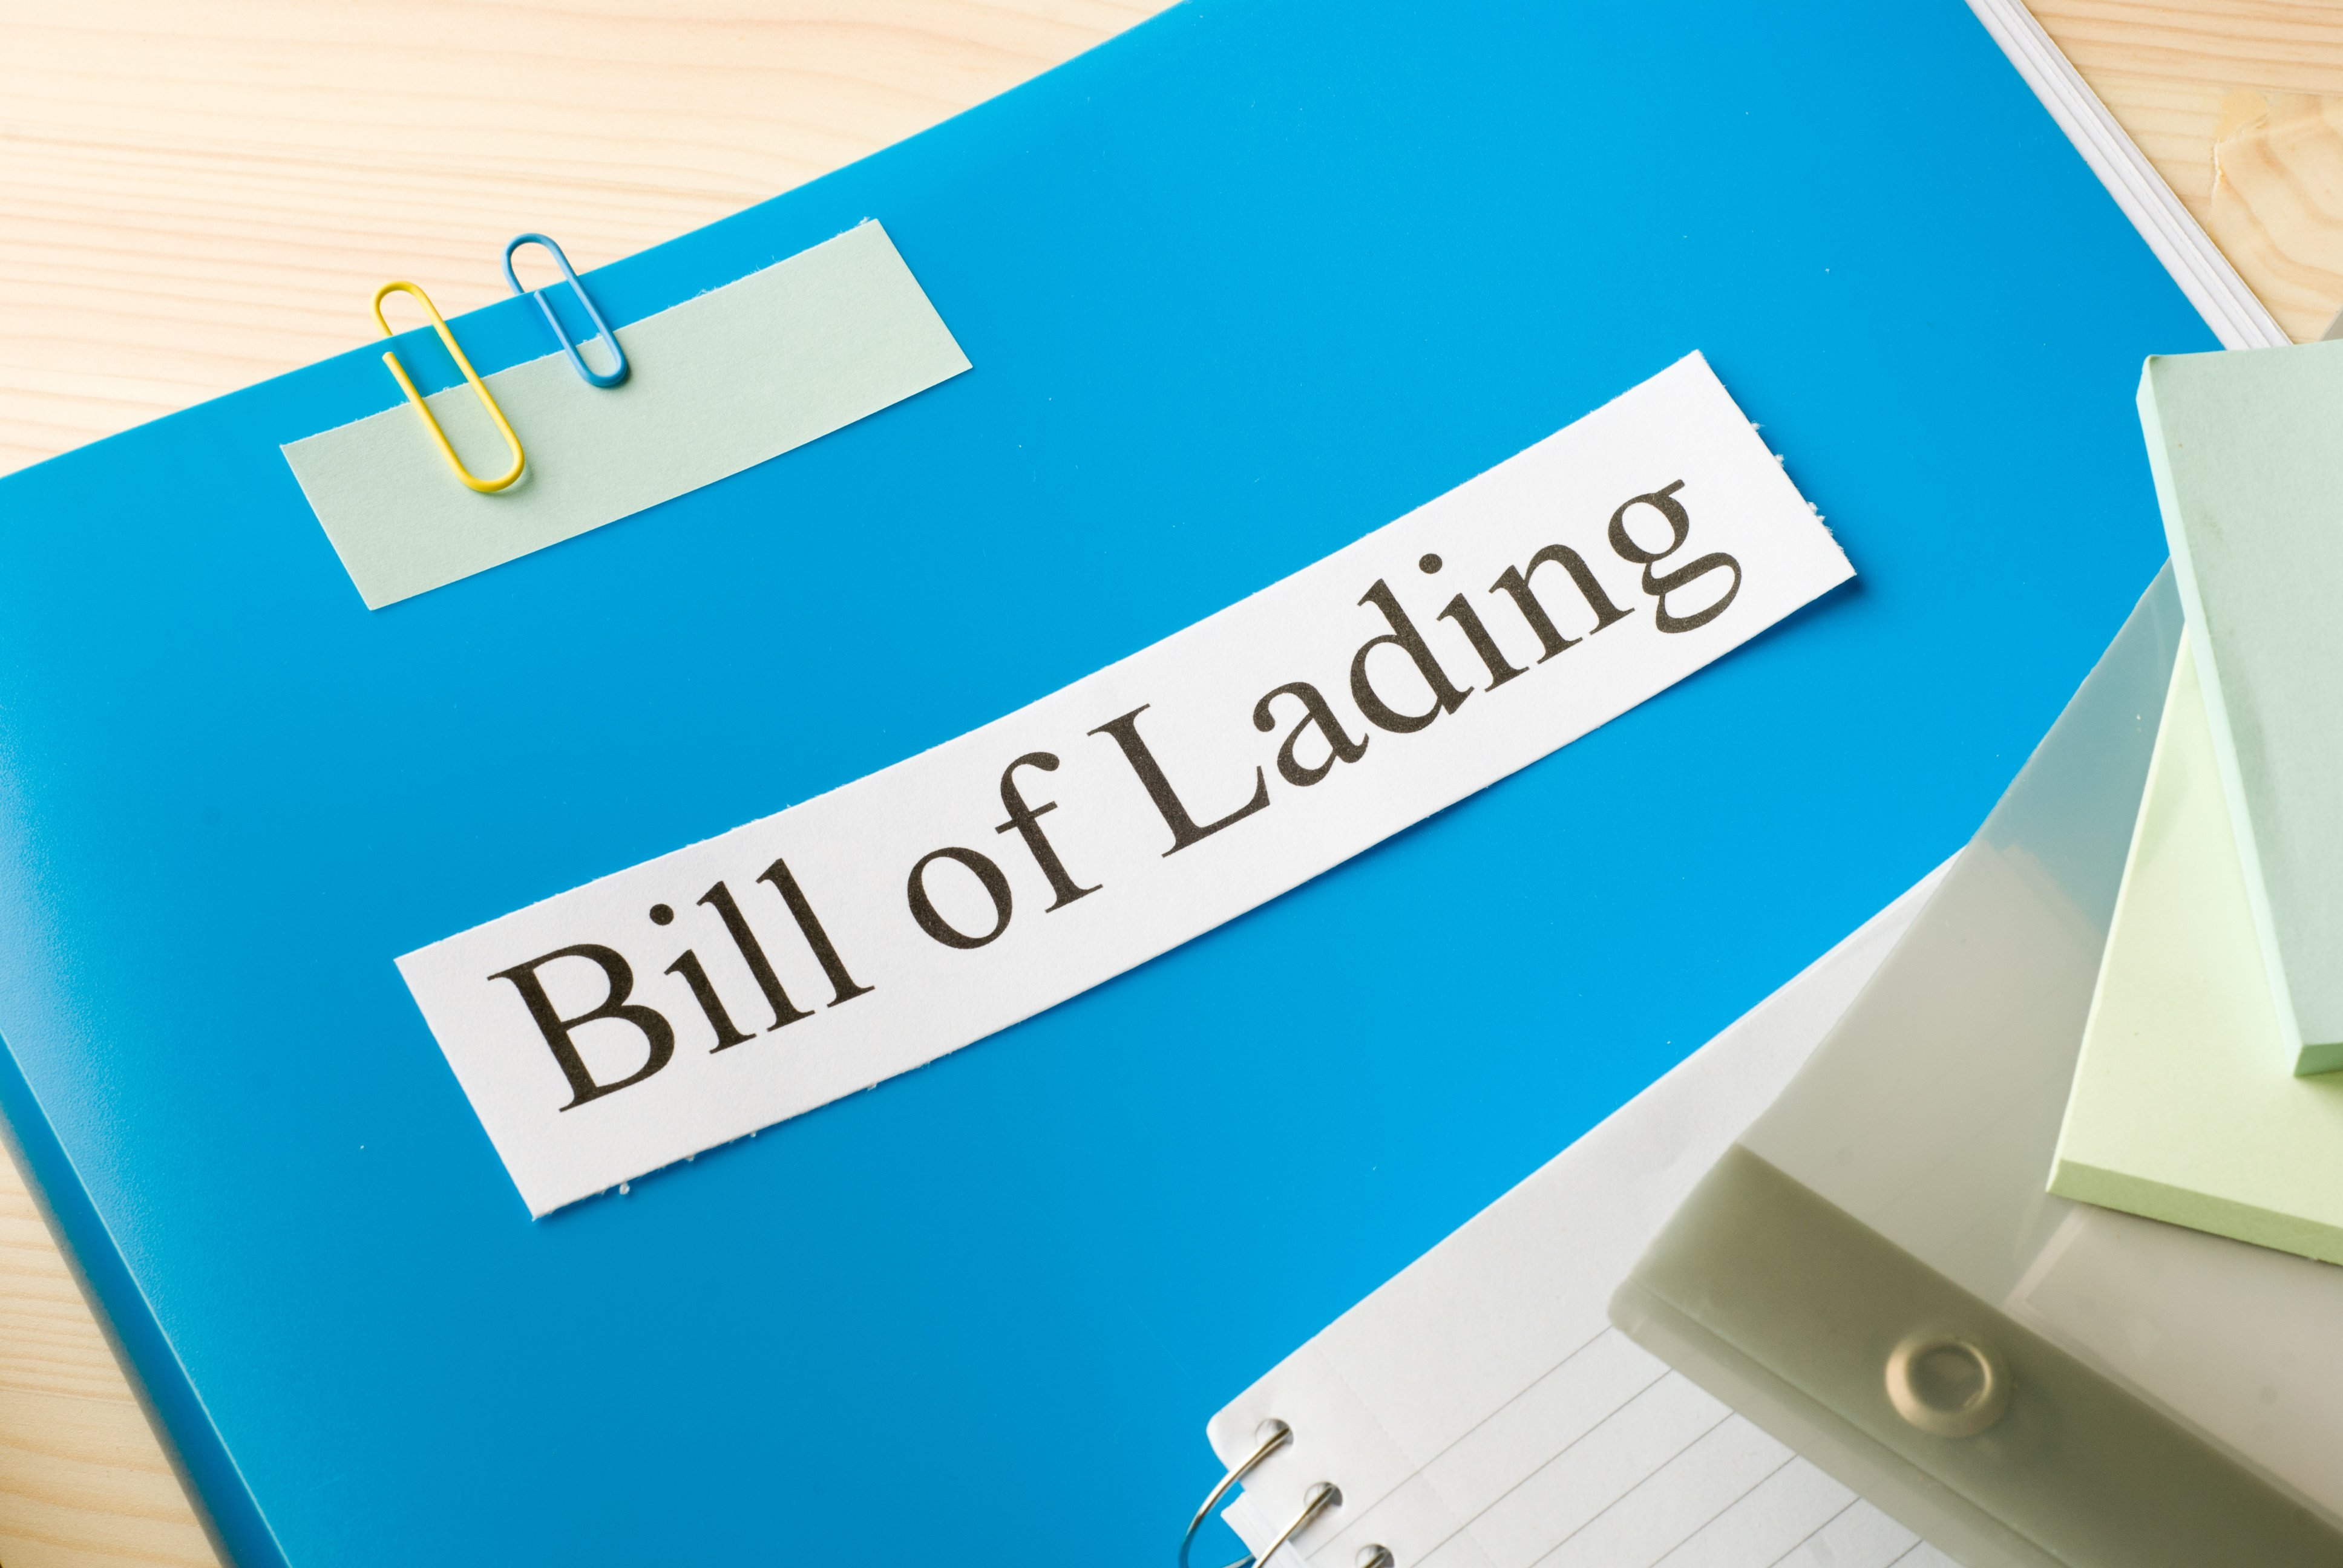 Bill of Lading (BOL) Defined & Its Importance